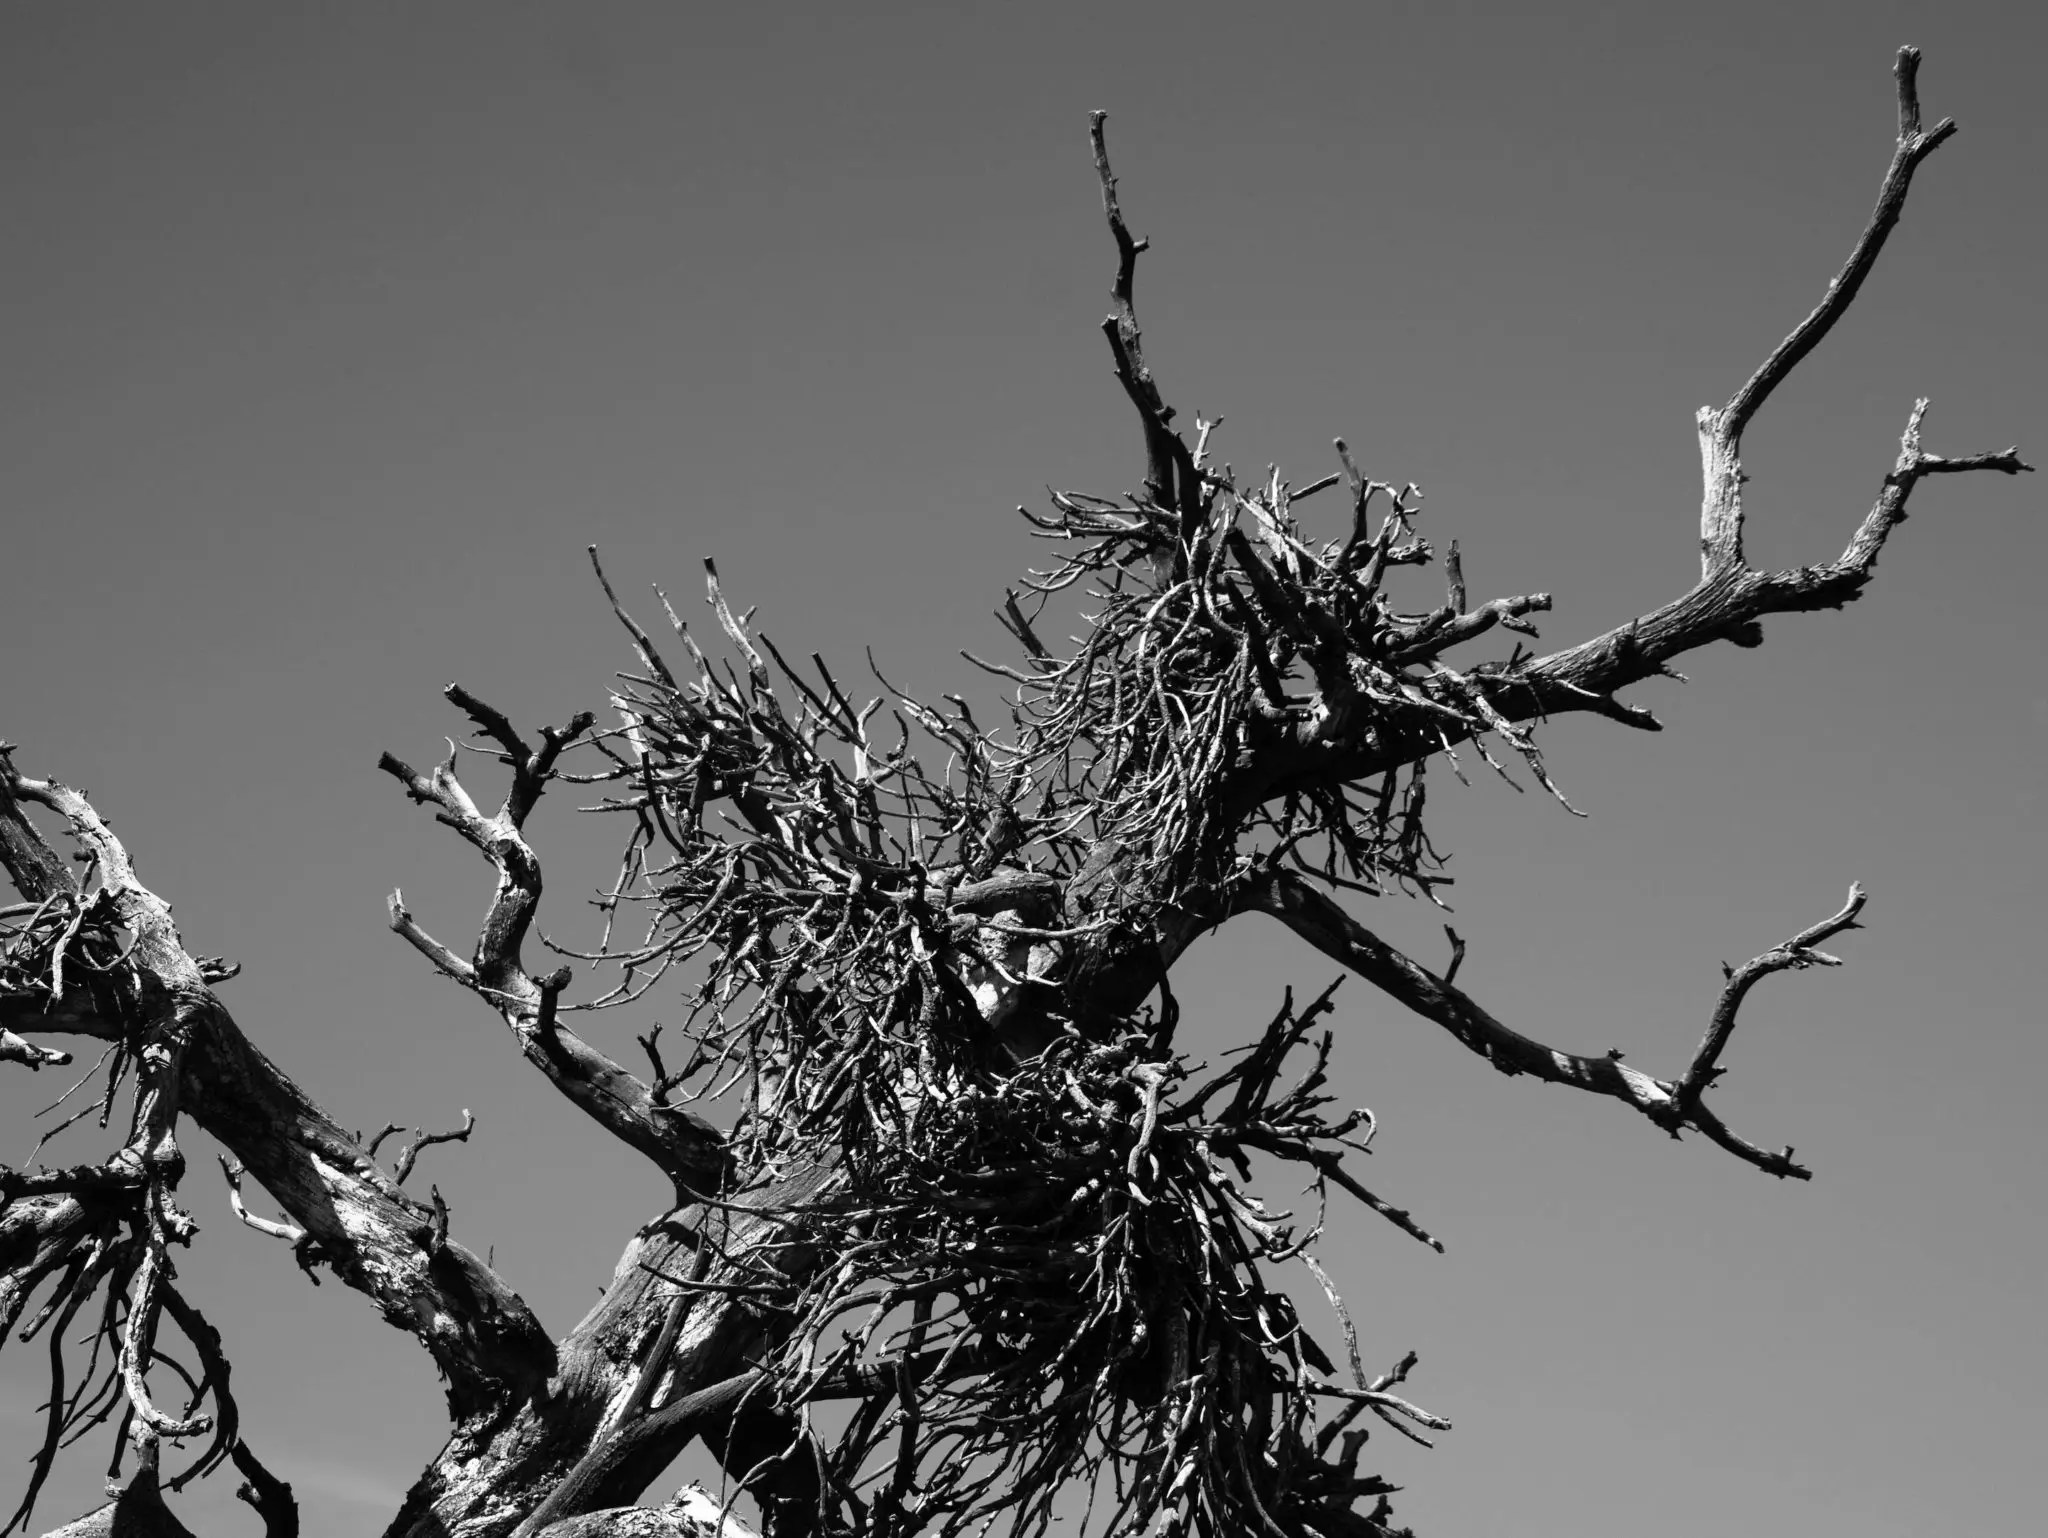 Witch's broom, an infection by dwarf mistletoe on limber pines.